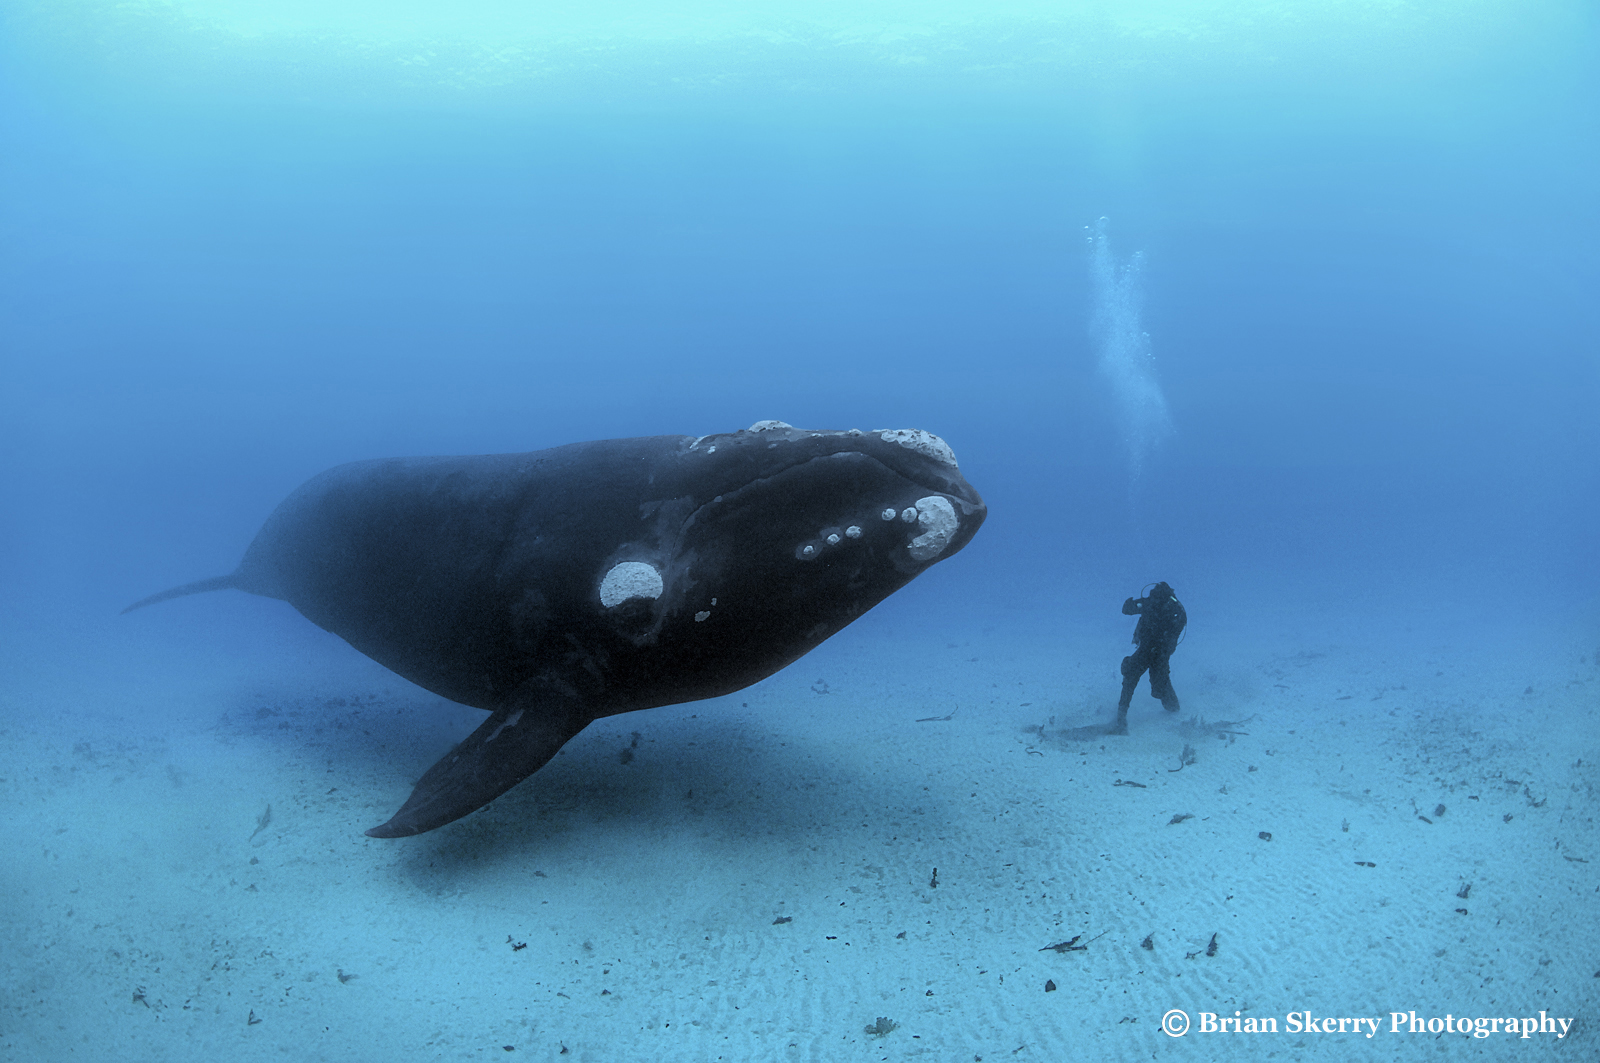 Southern right whale by Brian Skerry